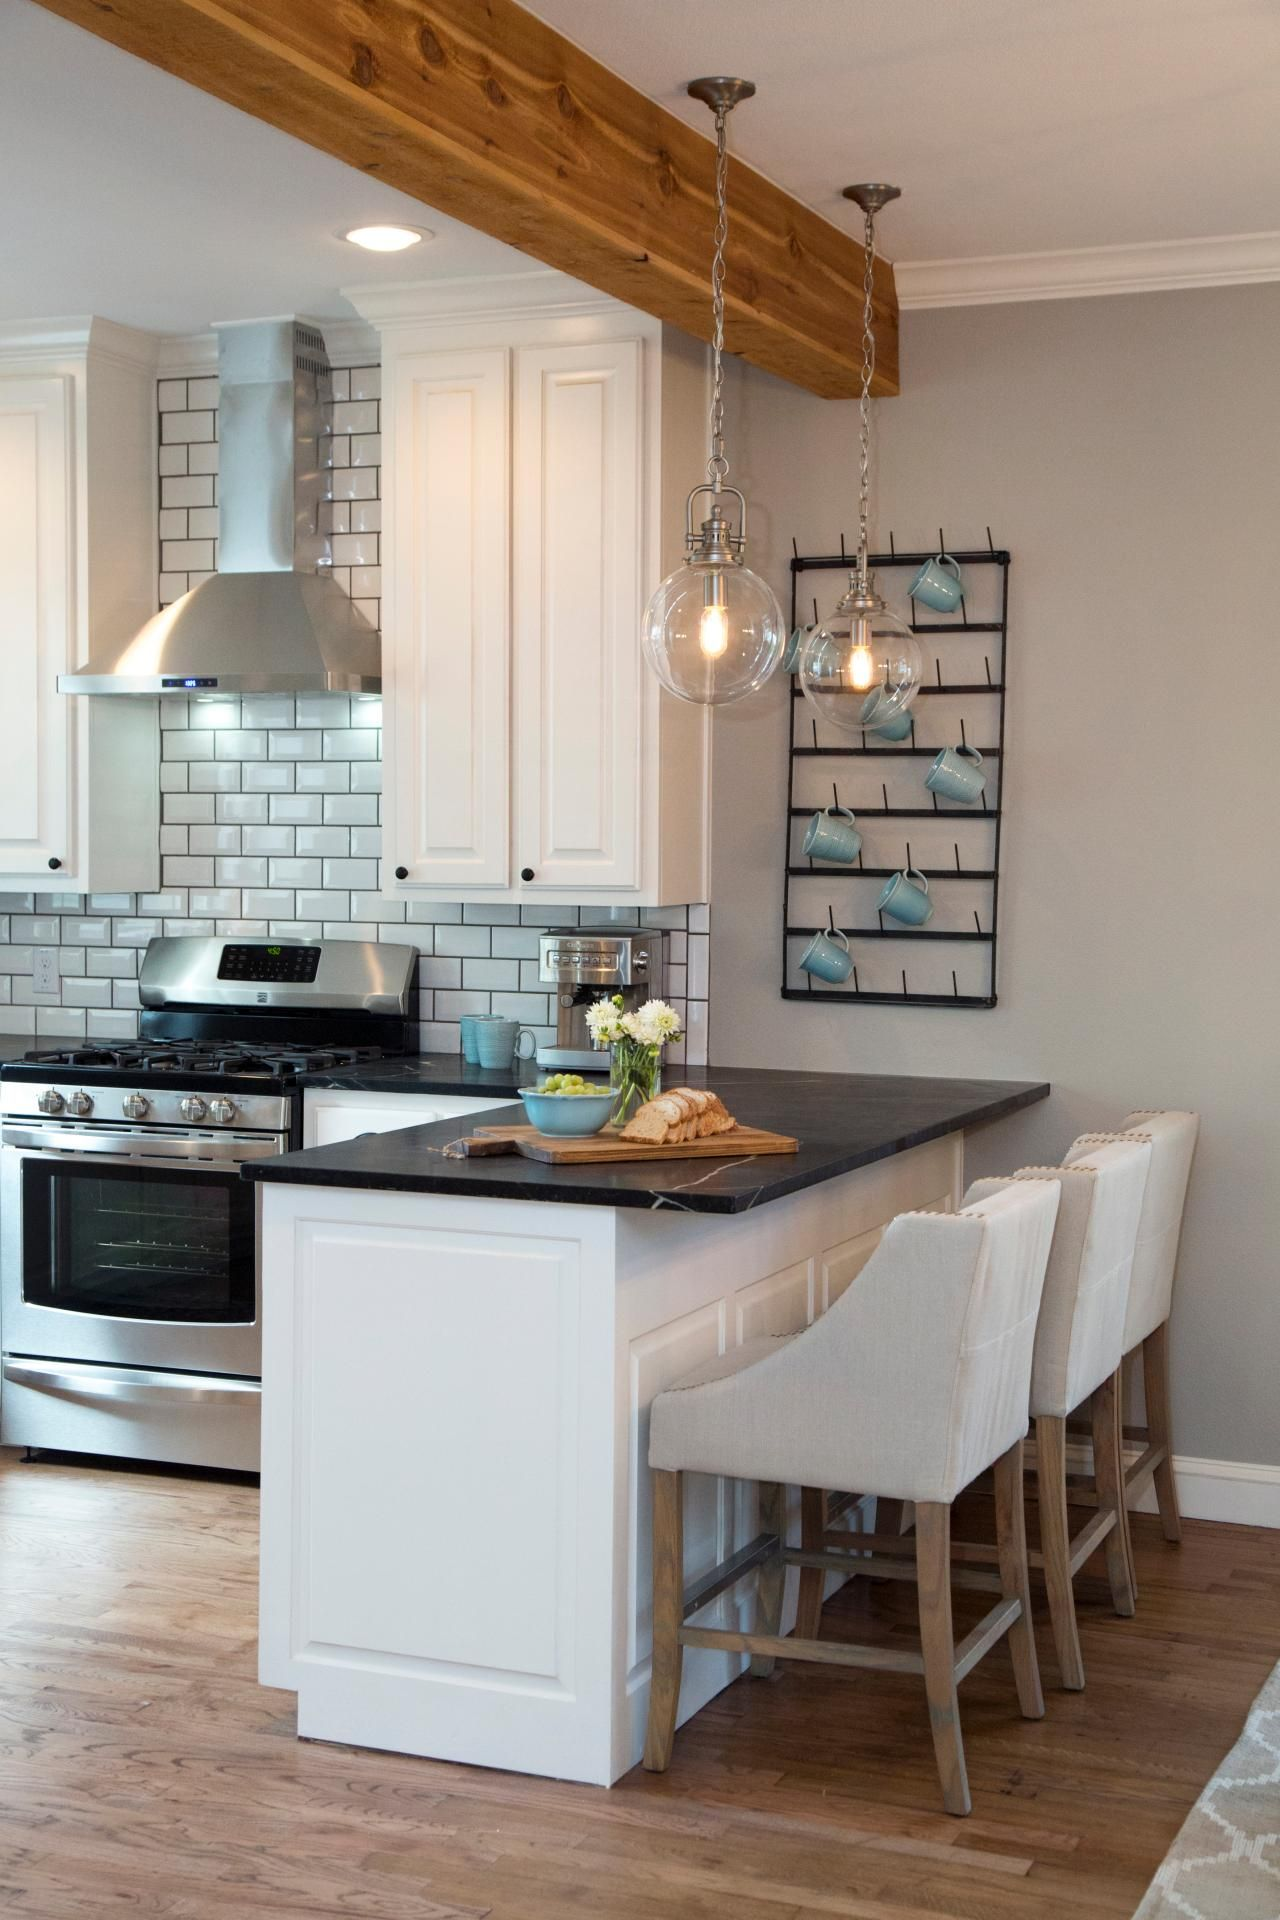 Fixer upper hosts chip and joanna gaines installed a for Kitchen ideas joanna gaines